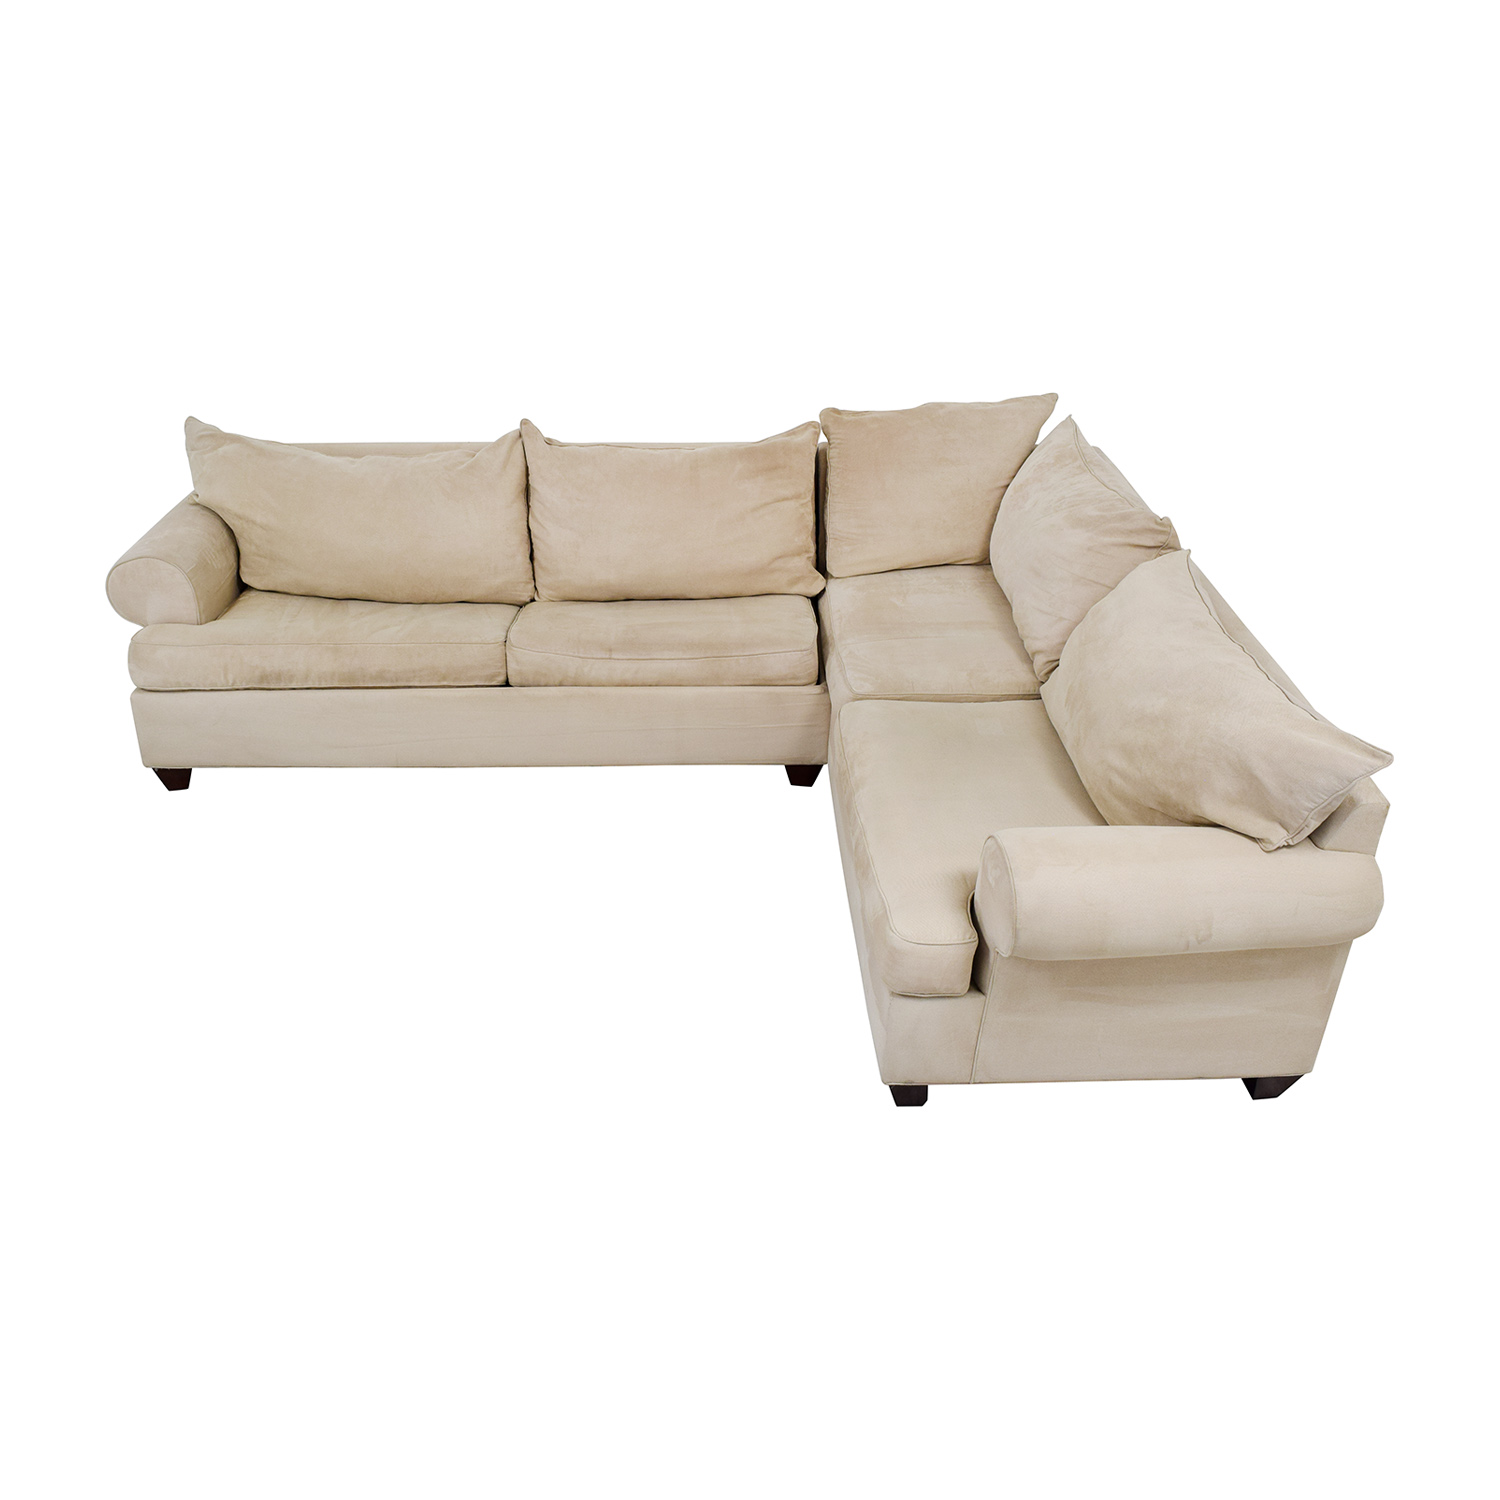 shop Raymour & Flanigan Raymour & Flanigan Sectional Sleeper Sofa online